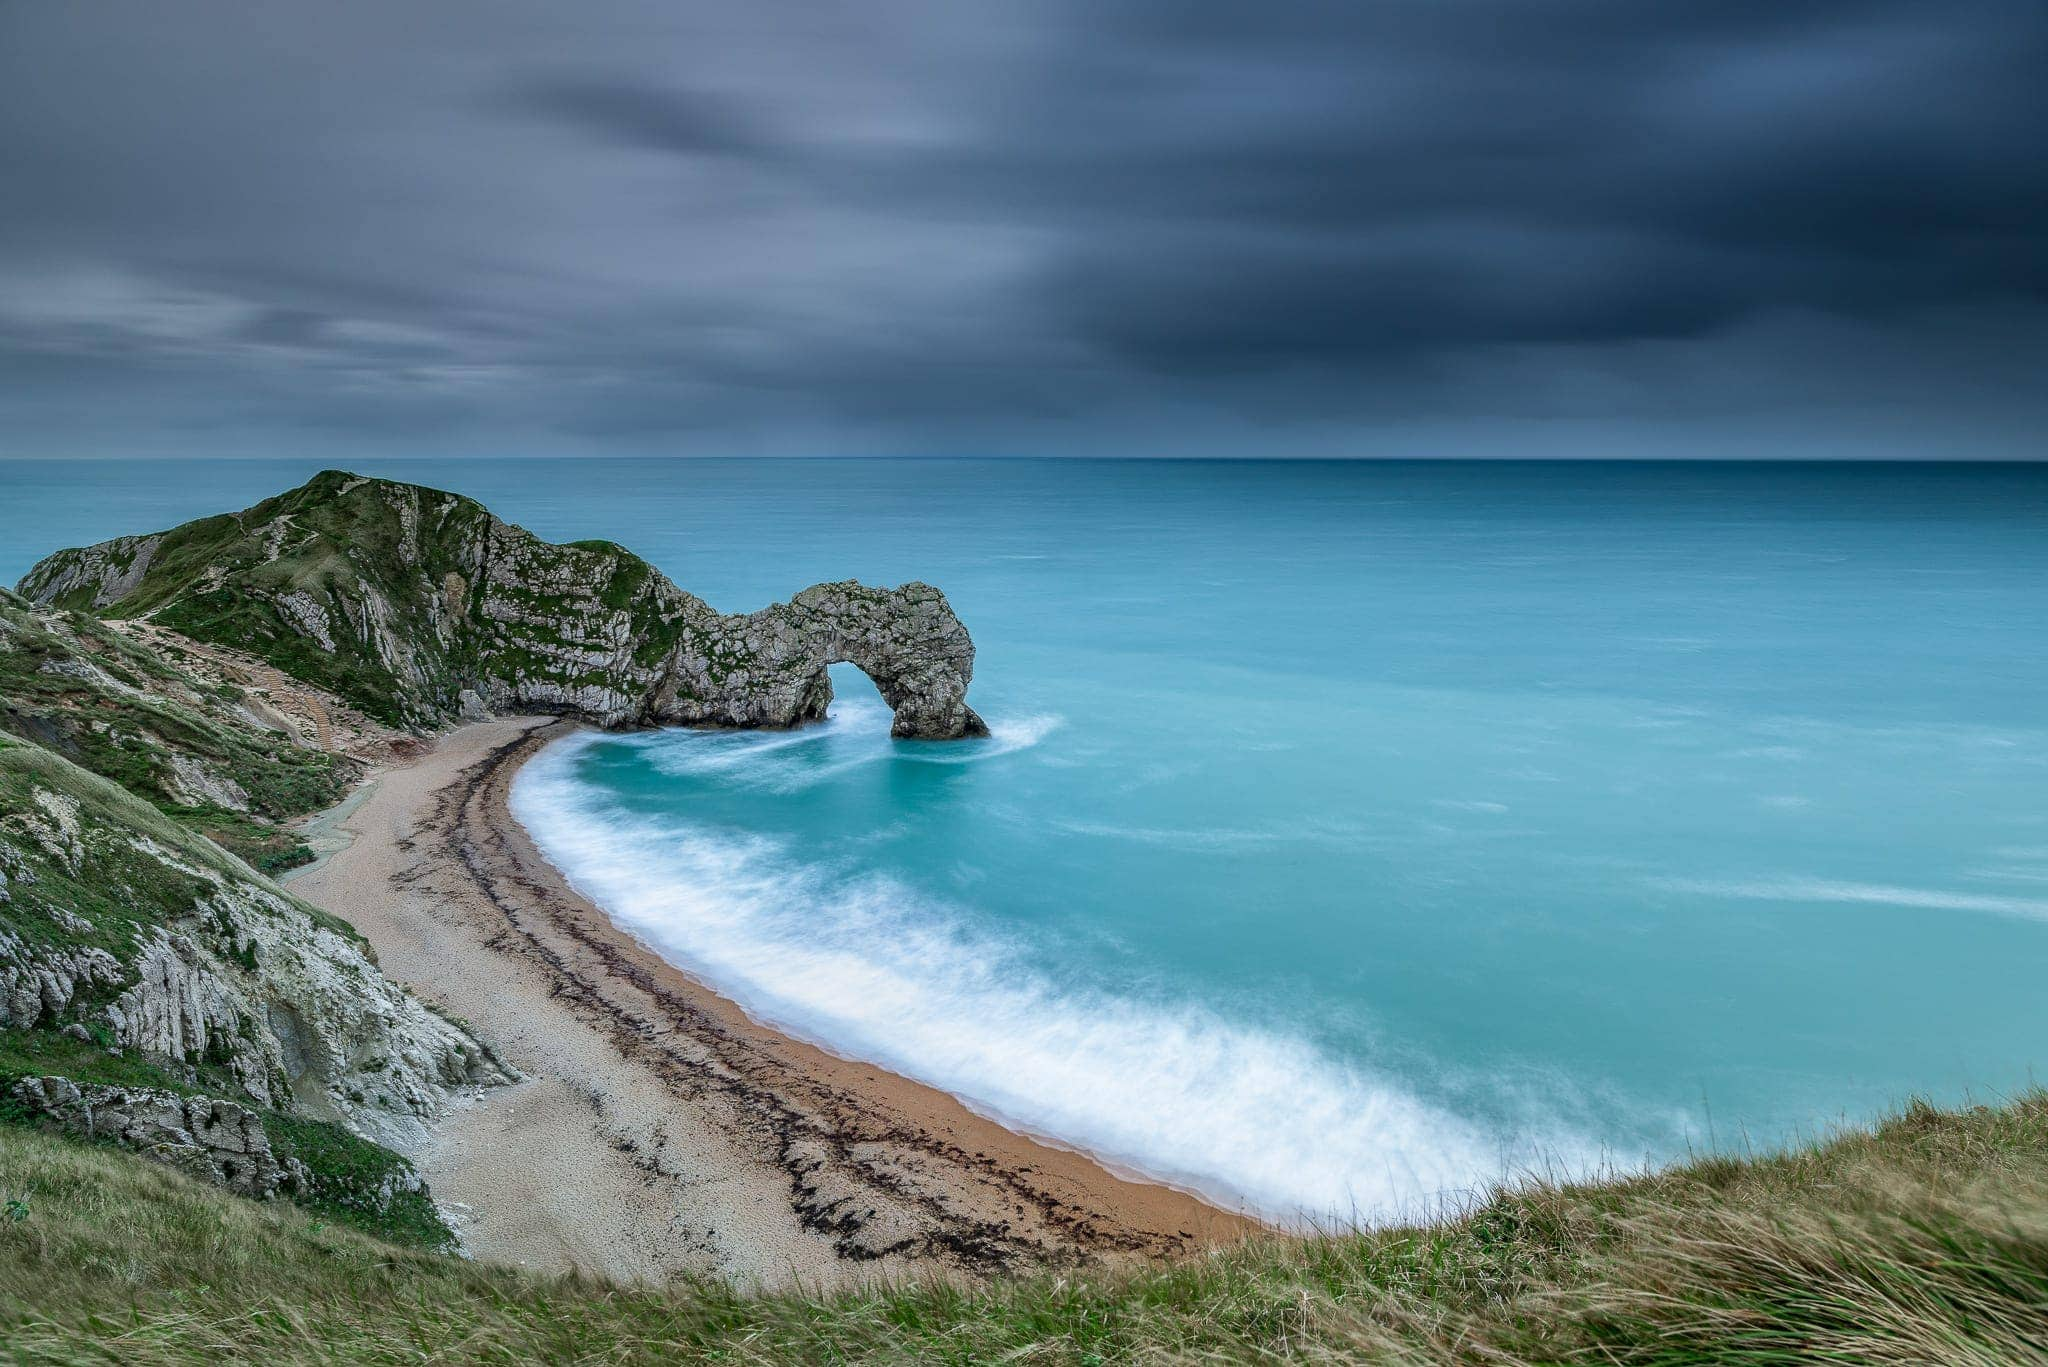 Francesco Gola Seascape Landscape Photography Uk Durdle Door Storm Long Exposure